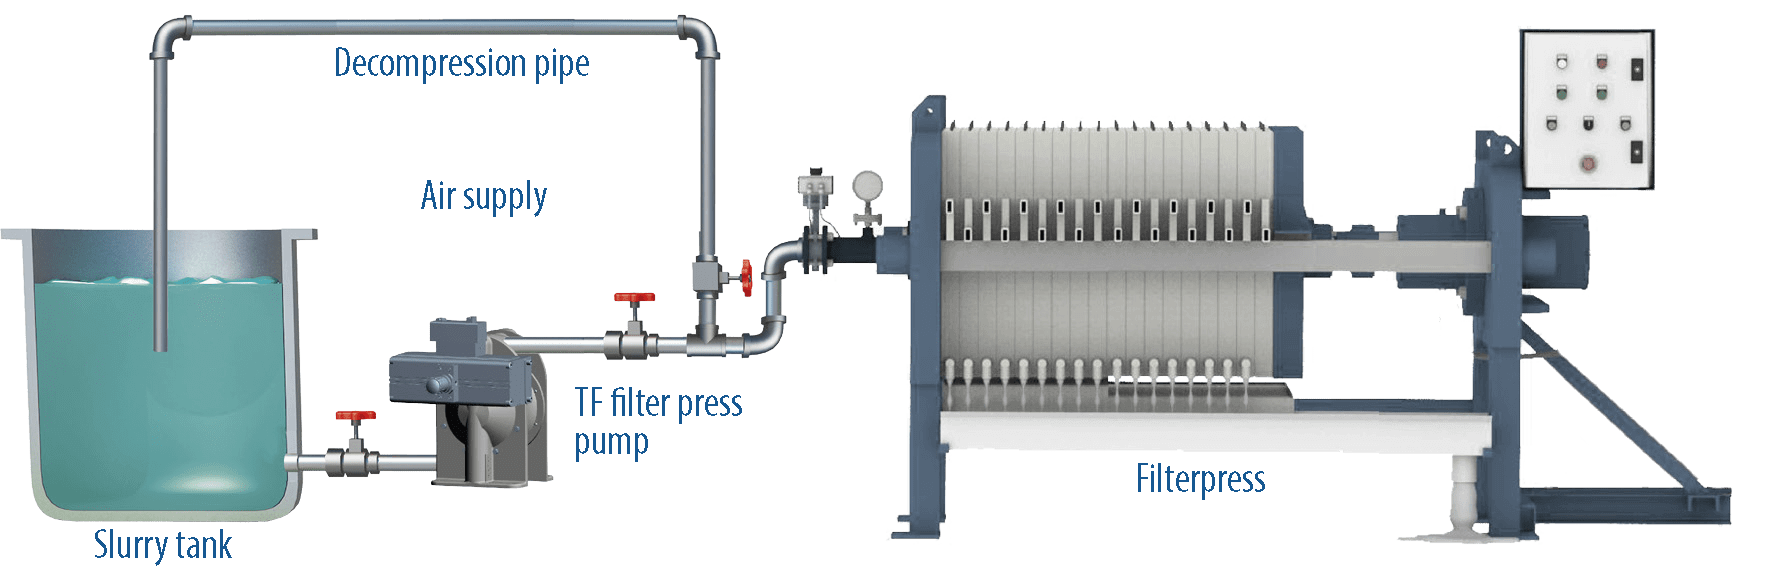 TF_pumps_filter_press_installation